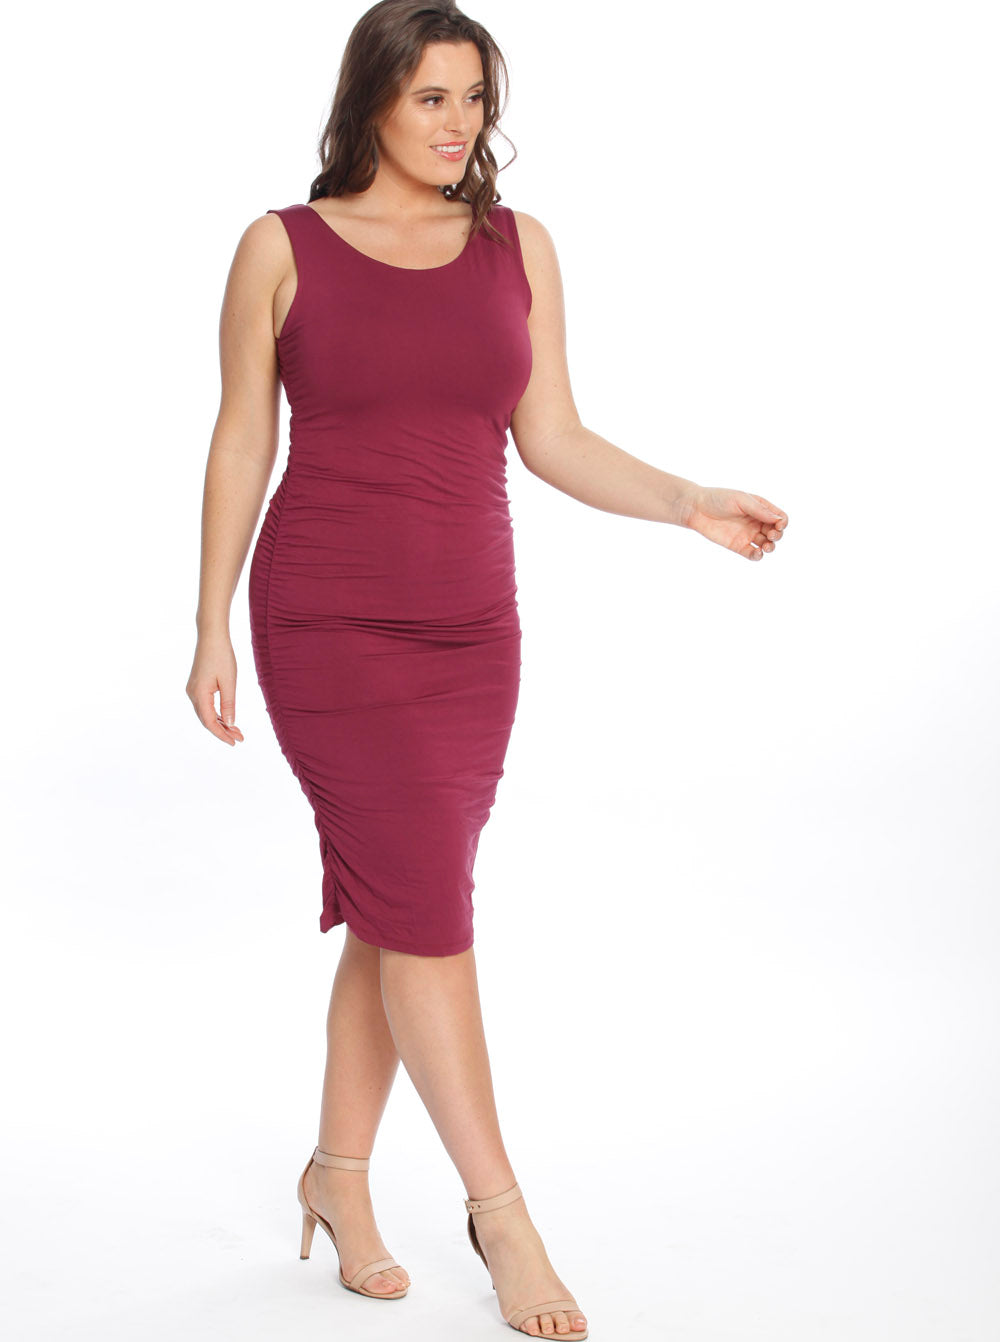 Bodycon Bamboo Dress - Burgundy/ Black